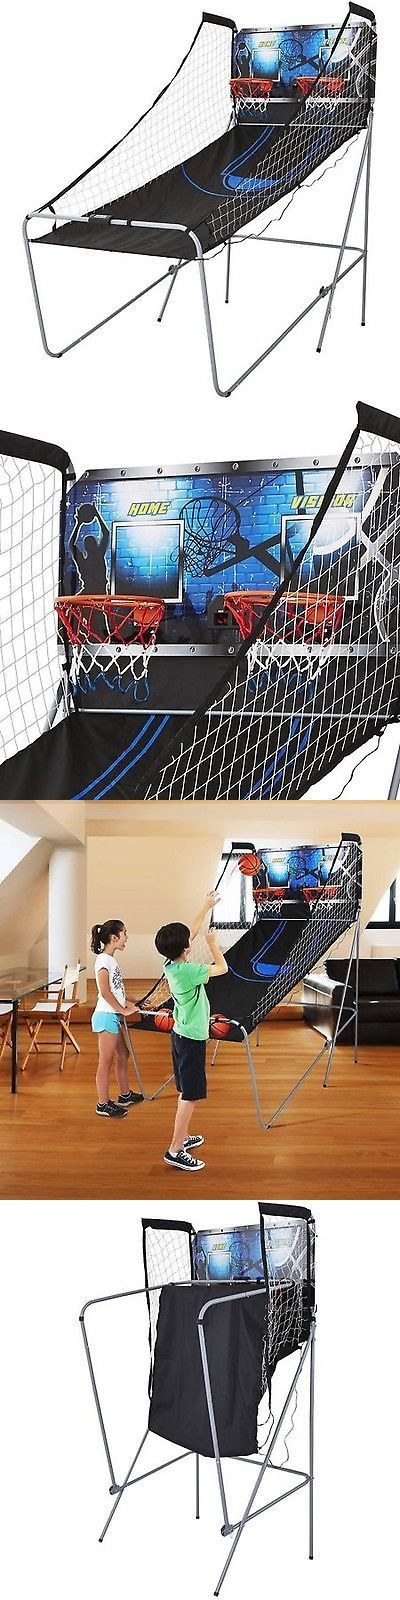 Other Indoor Games 36278: 2-Player Basketball Game Arcade With 8 Game Options Md Sports BUY IT NOW ONLY: $58.86